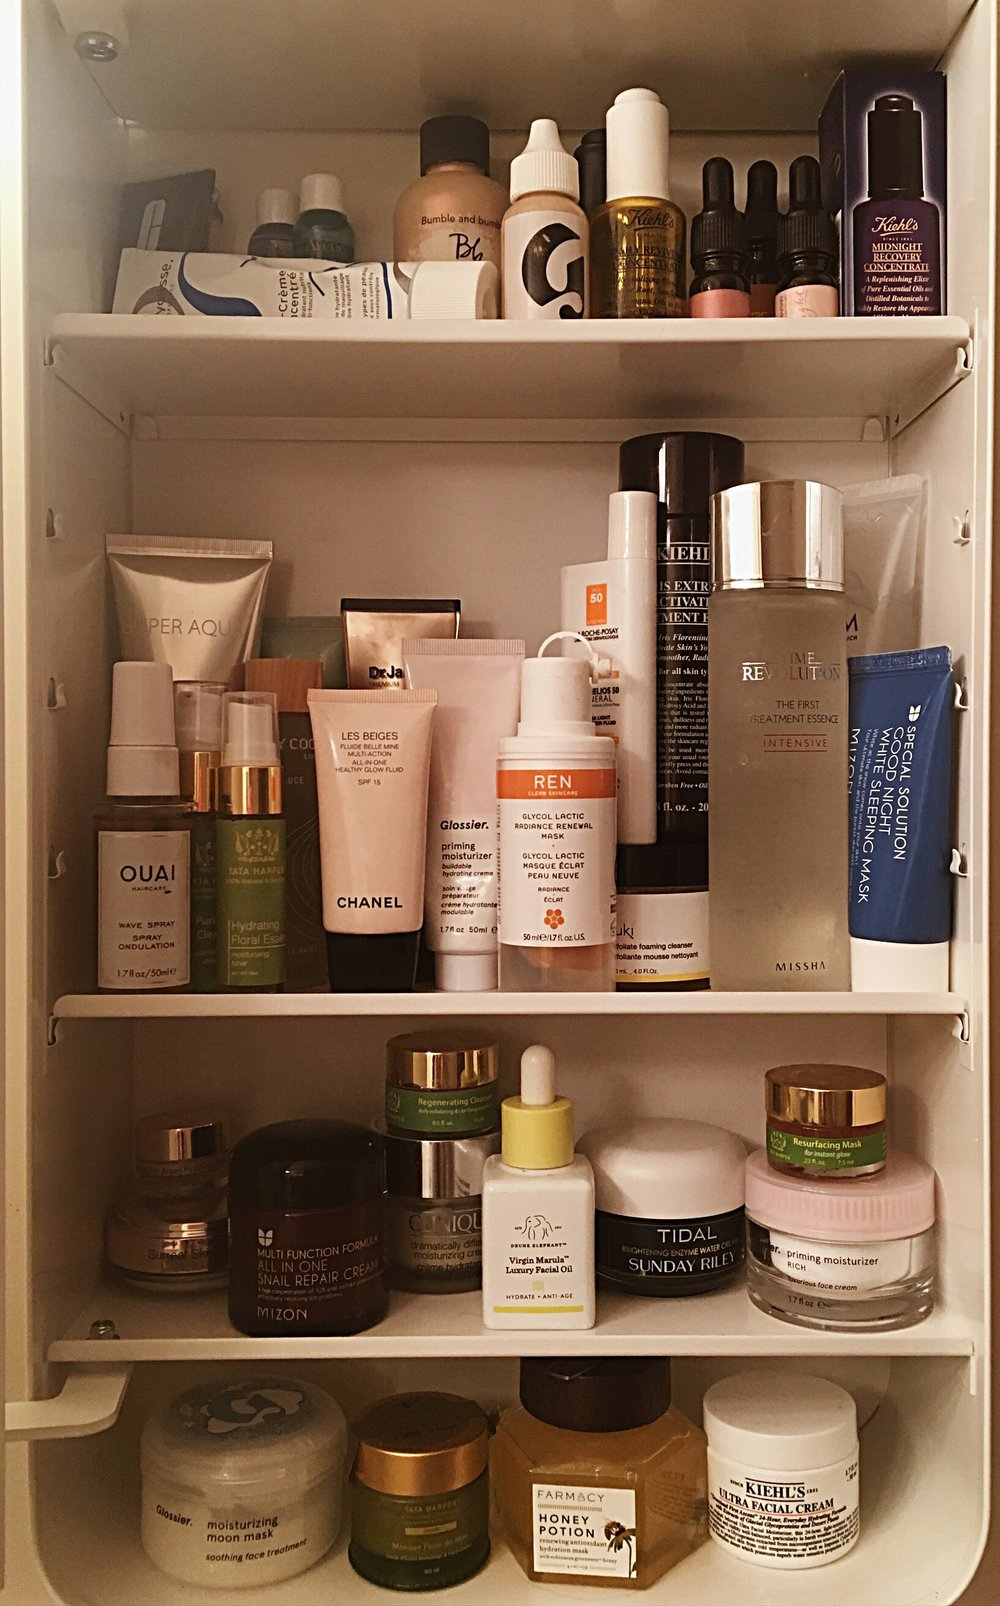 More than half of this cabinet brought to you by Birchbox, and my credit card bill.